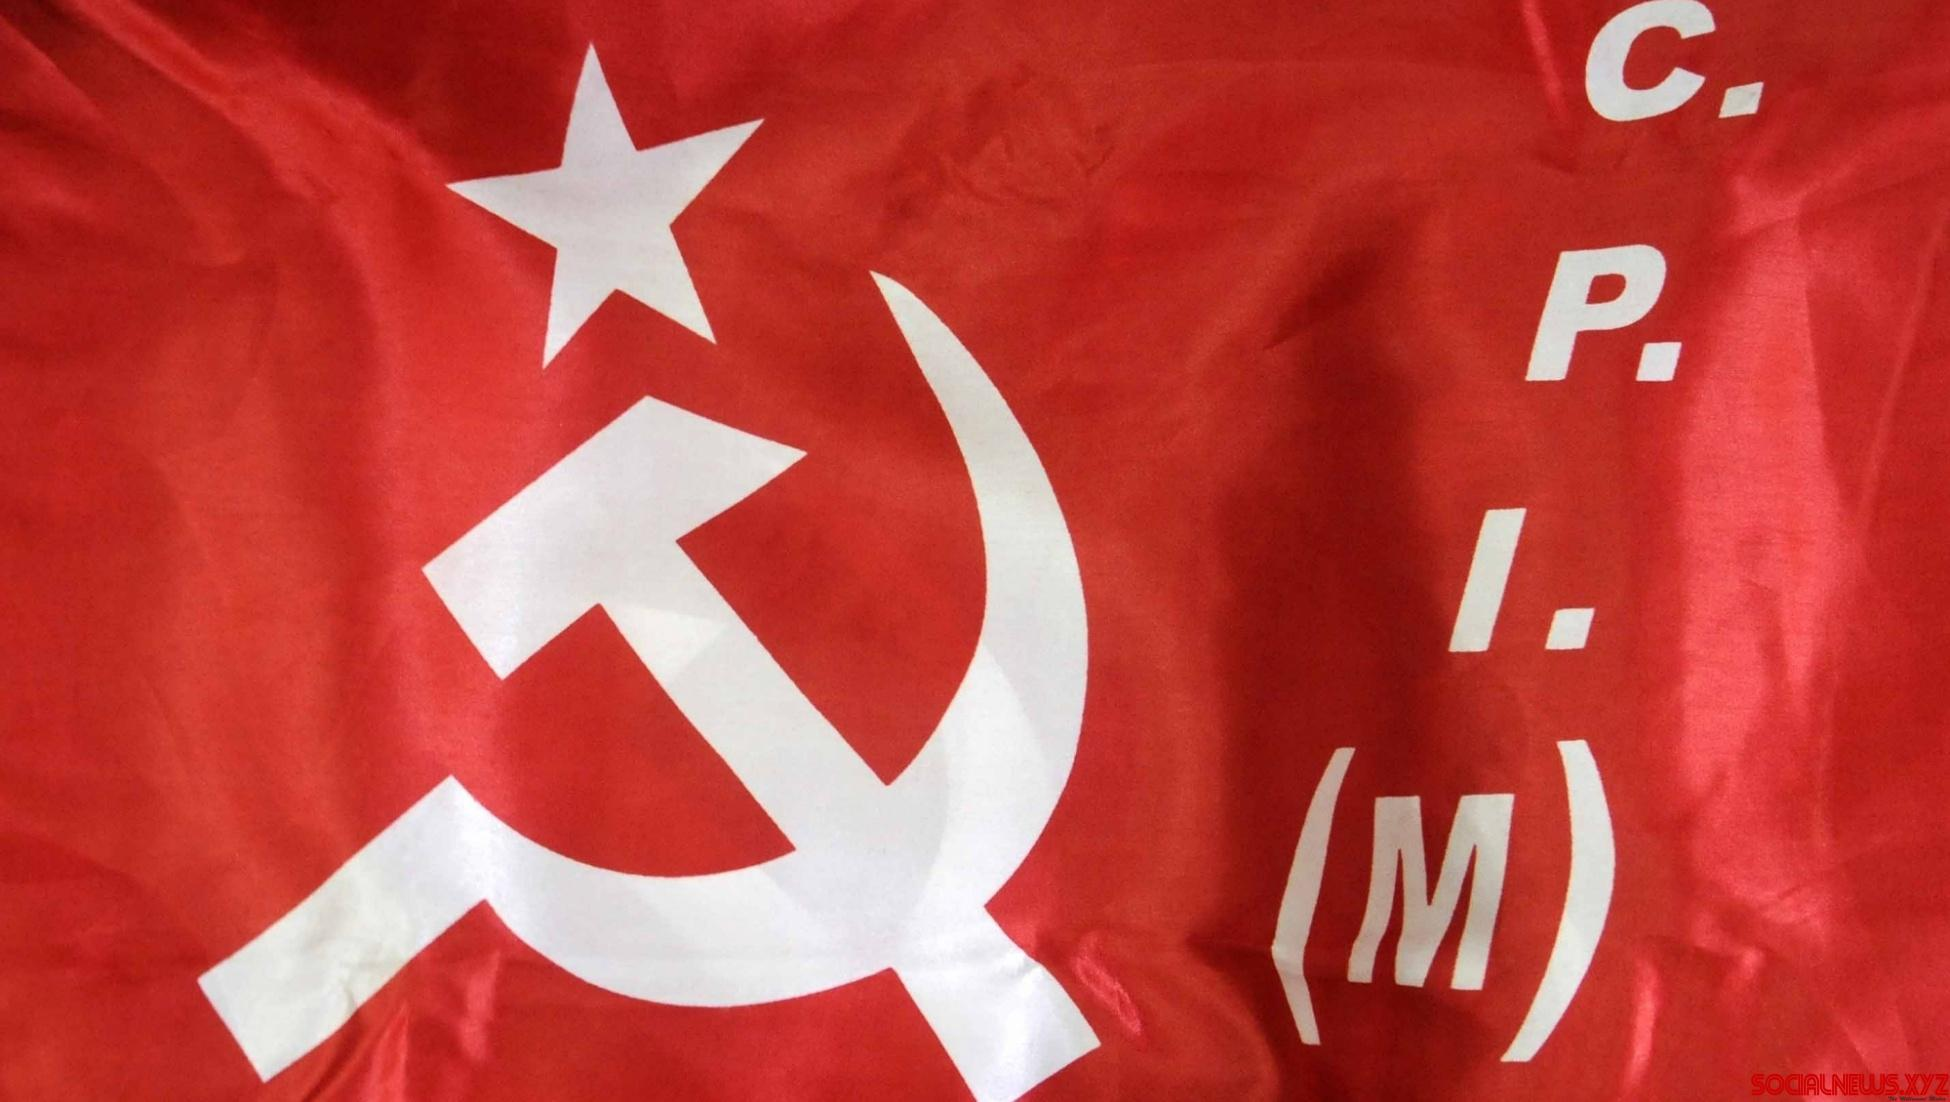 CPI-M releases 1st list, repeats 8 of 9 sitting MPs